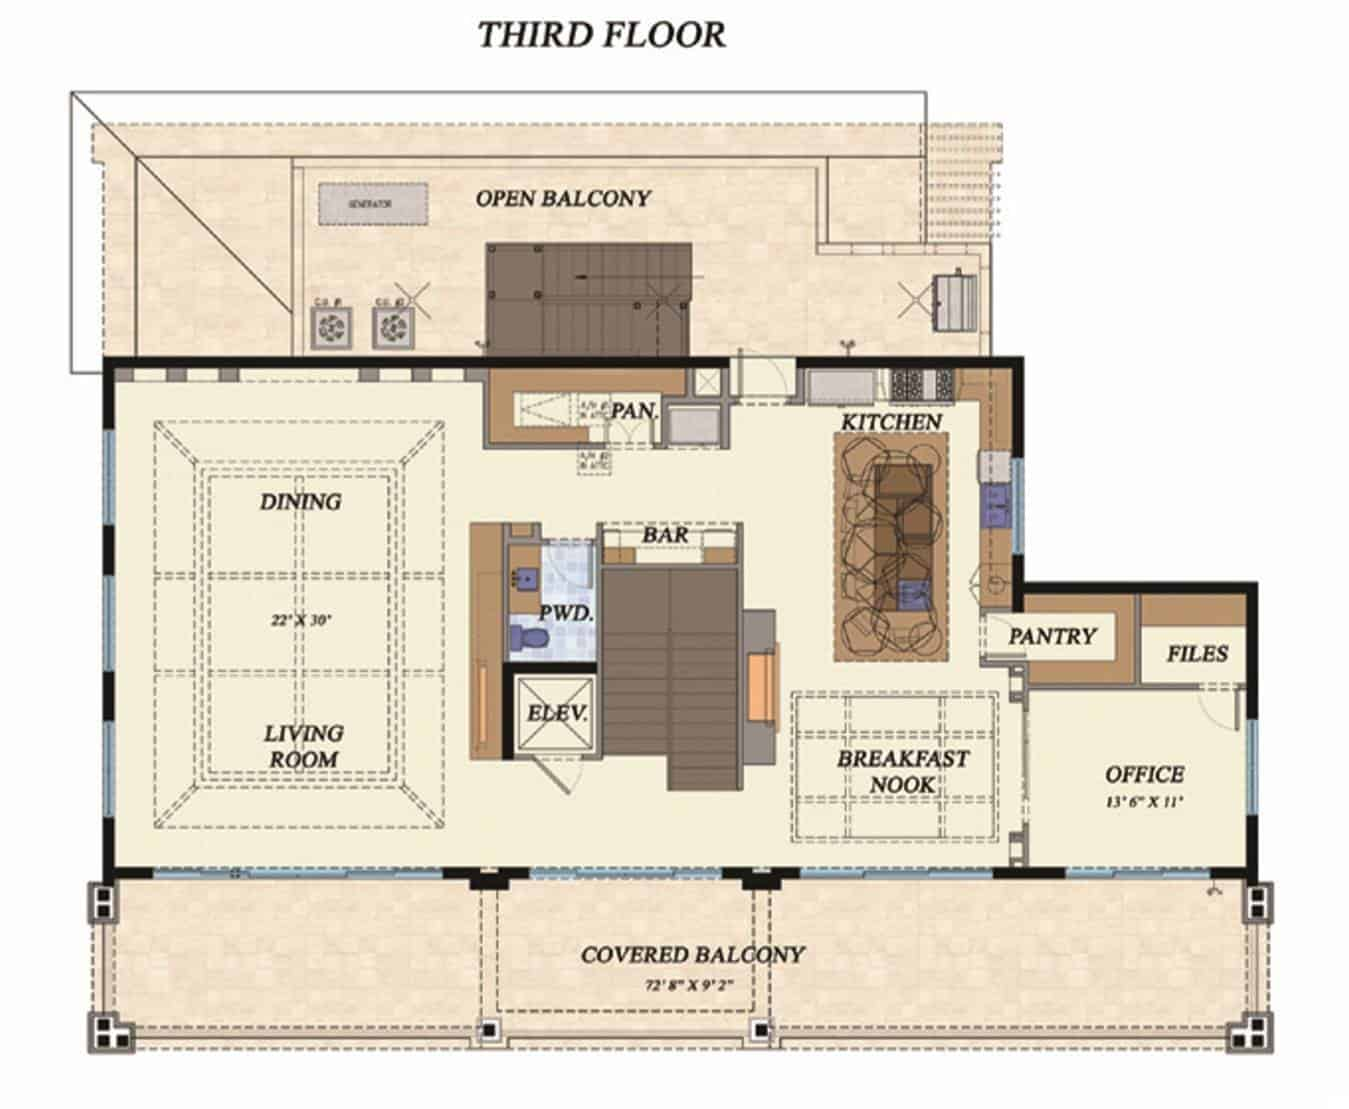 Third level floor plan with living room, dining room, kitchen, office, and kitchen with breakfast nook, two pantries, and a bar all accessible via a handy elevator.